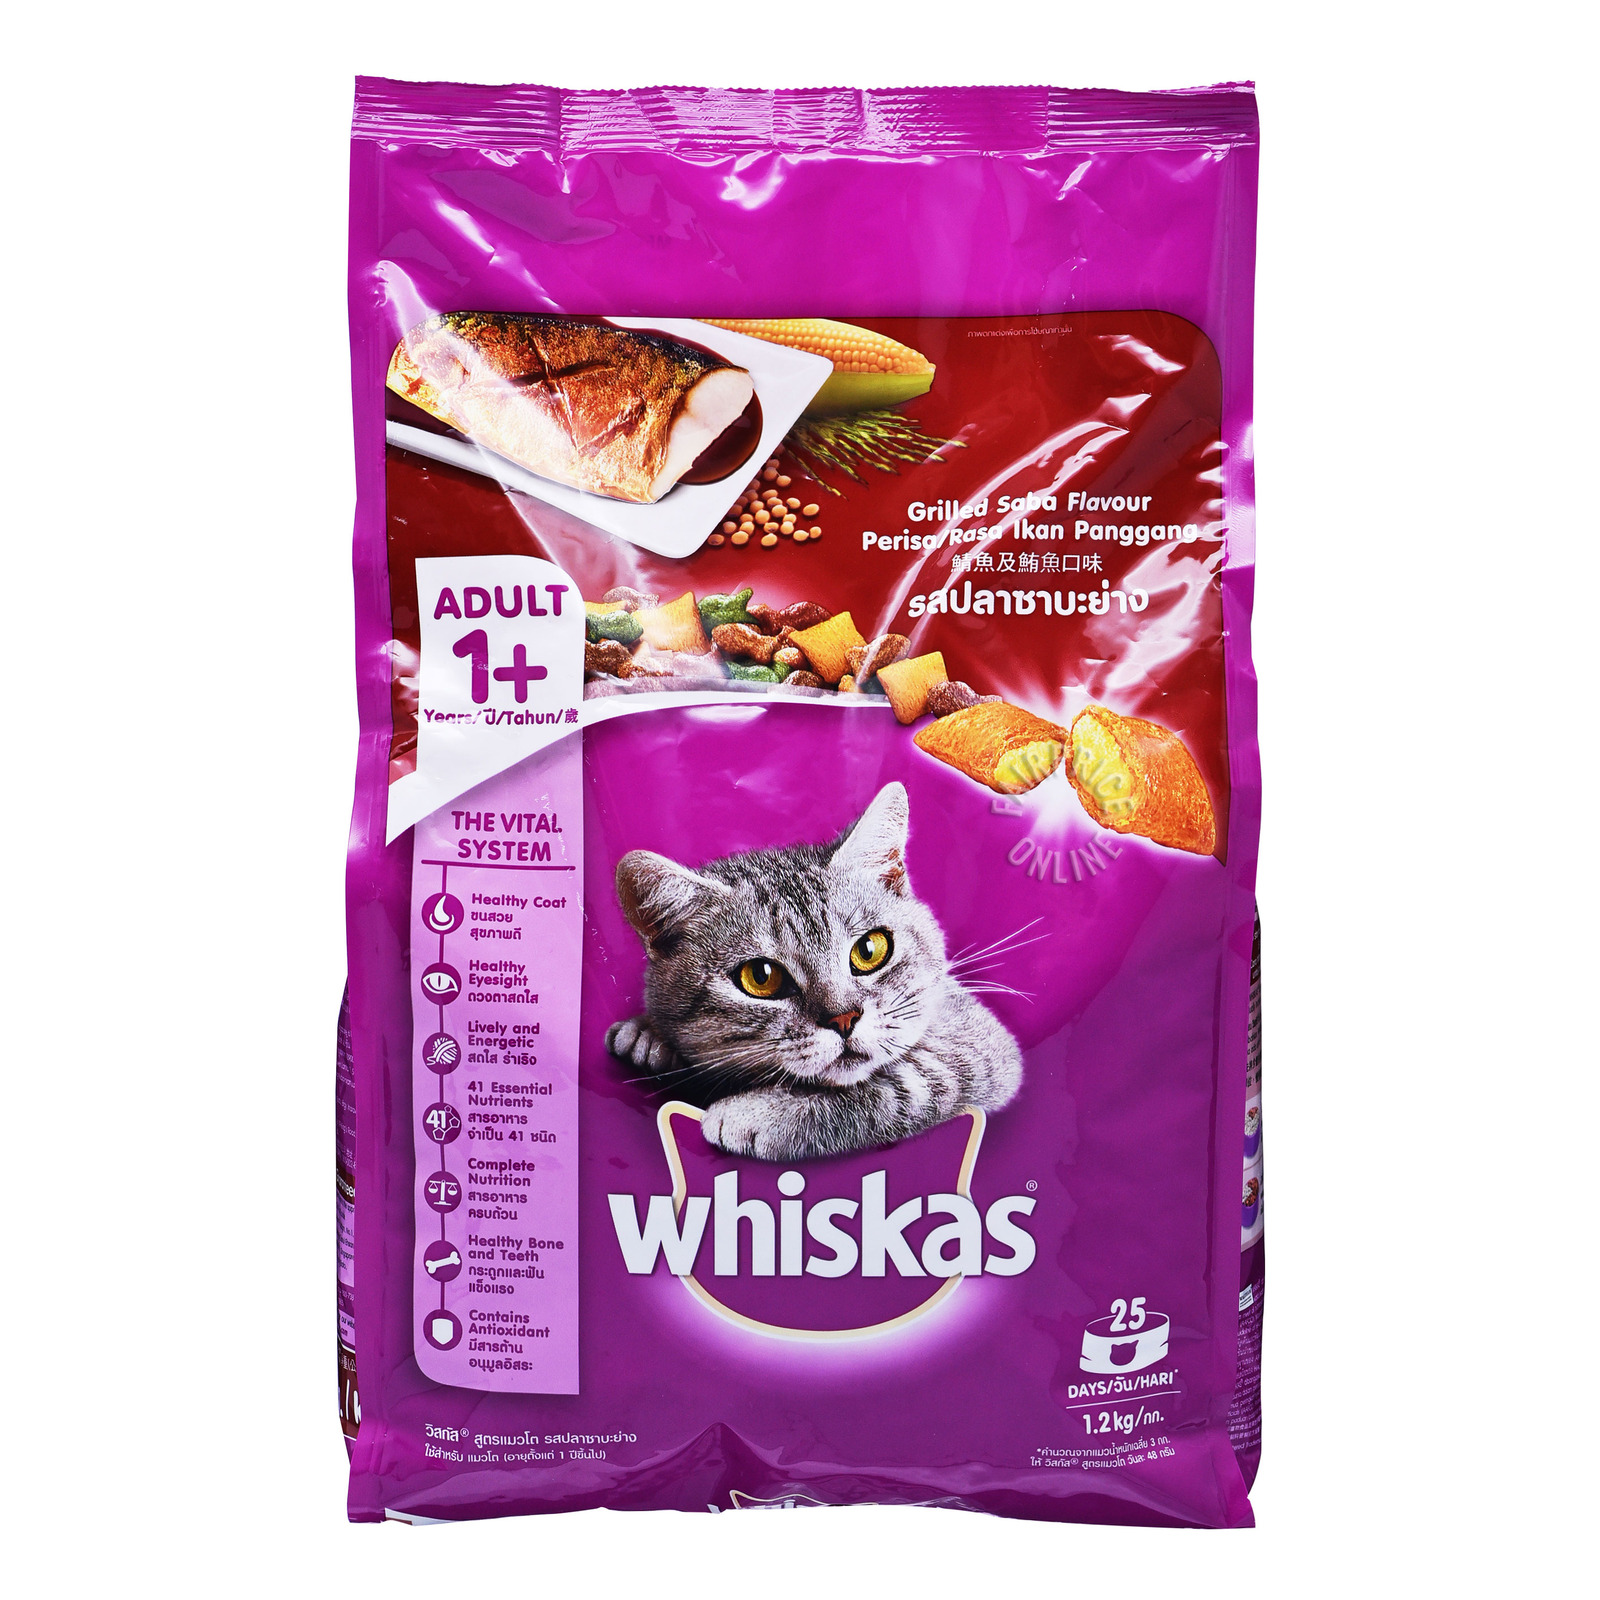 Whiskas Adult Cat Dry Food - Grilled Saba